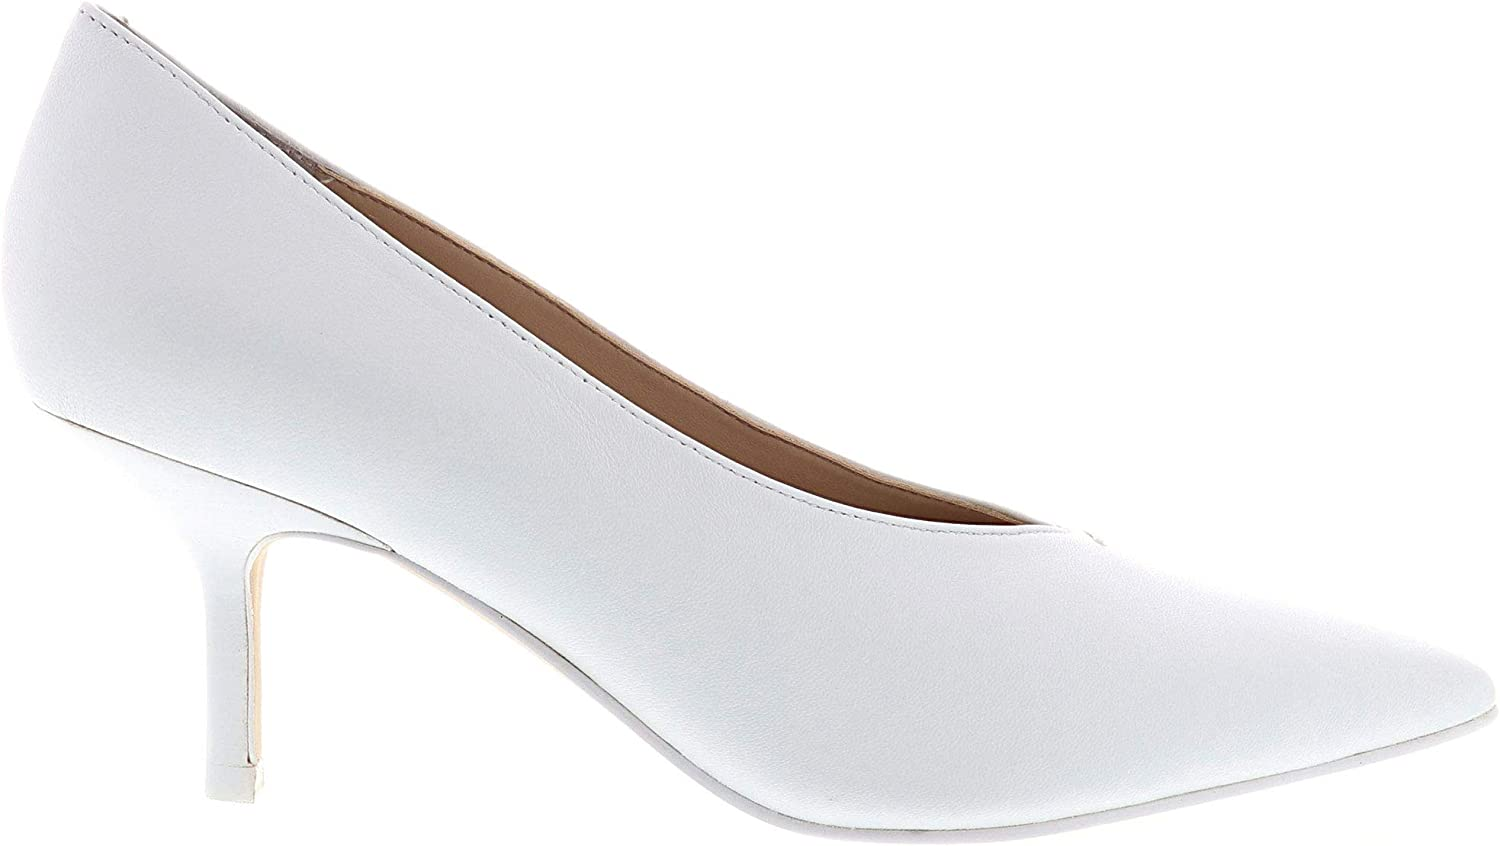 Marc Fisher Limited Women's Dallon Dress shoes in White, 8.5 US